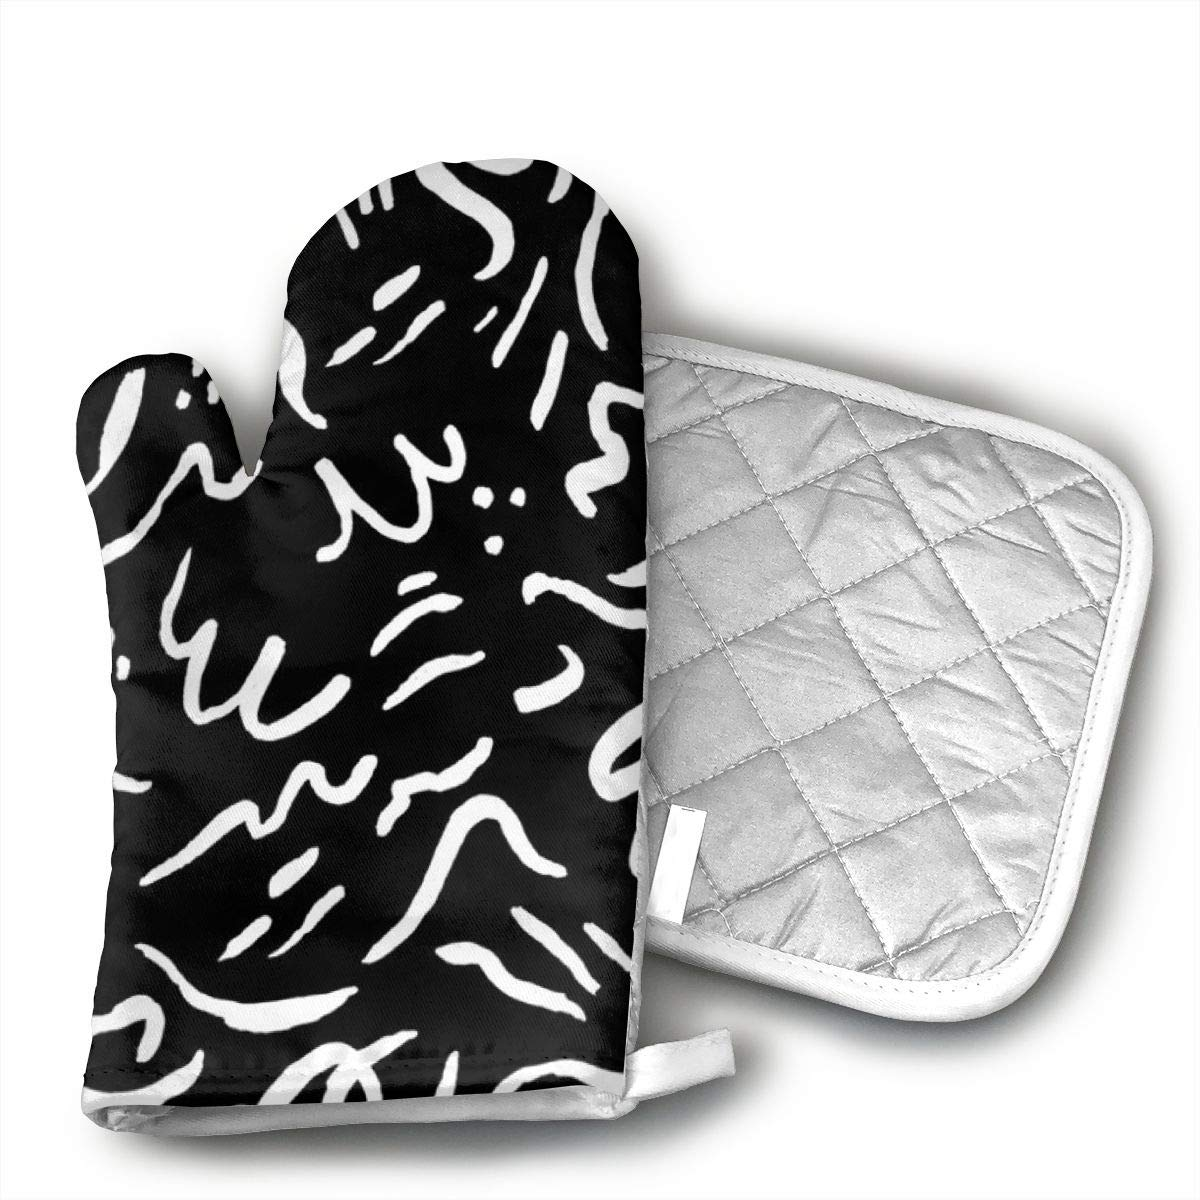 not Patterns - Will Bryant Studio Insulated Gloves Mats Non-Slip Surface Safety for Baking Cooking Grilling